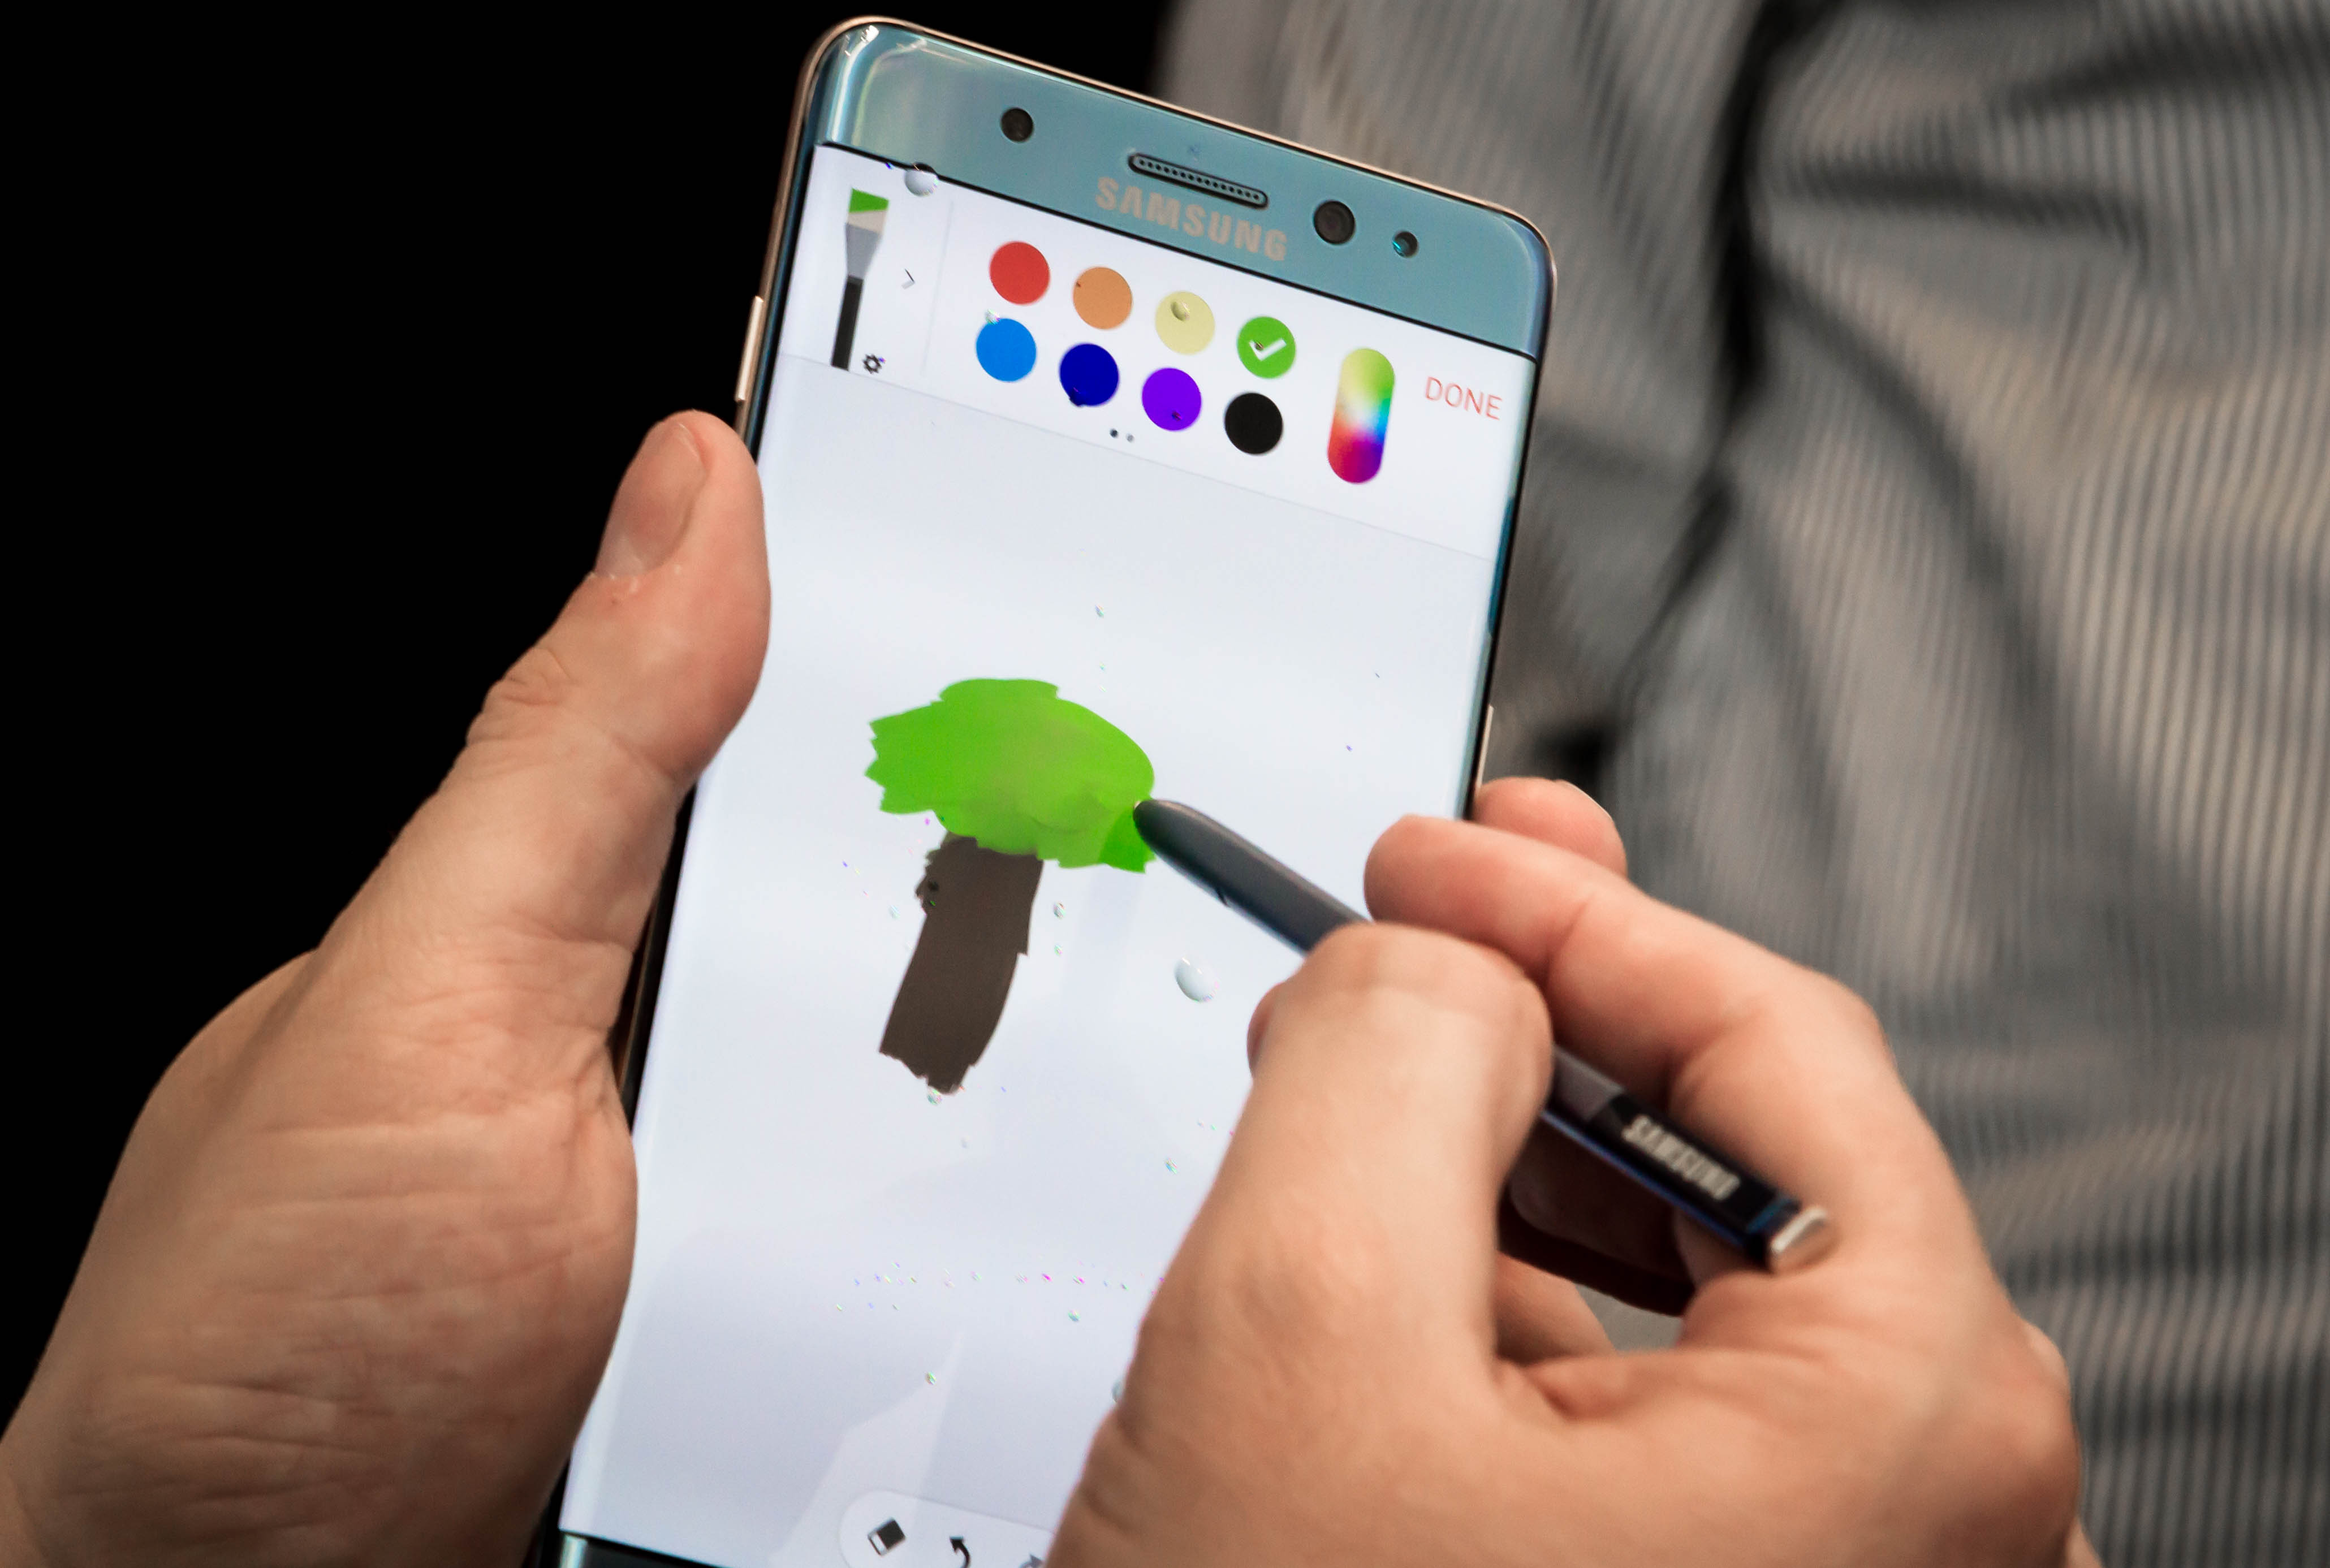 Drawing on the Samsung Galaxy Note7